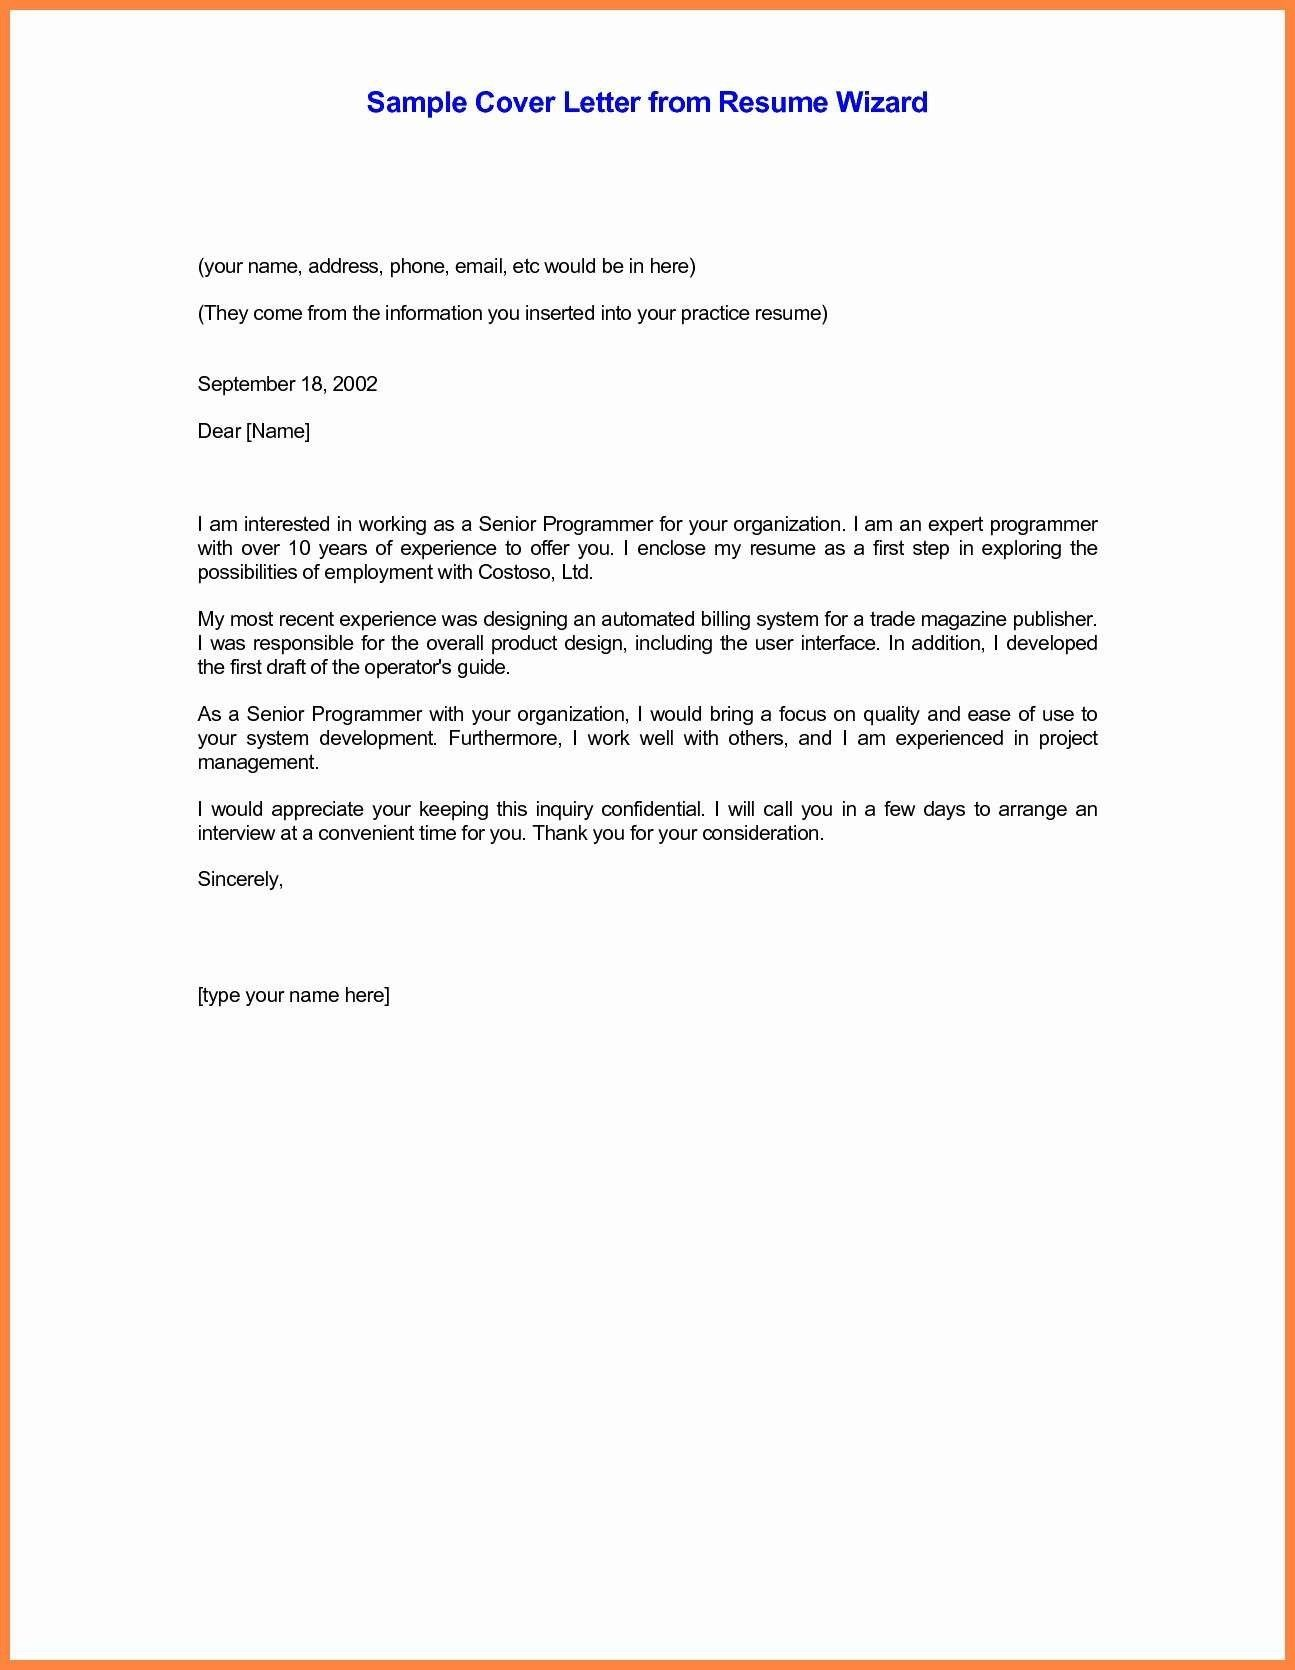 23 Customer Service Cover Letter Examples Security Letters Best What Is A Resume For Job Unique